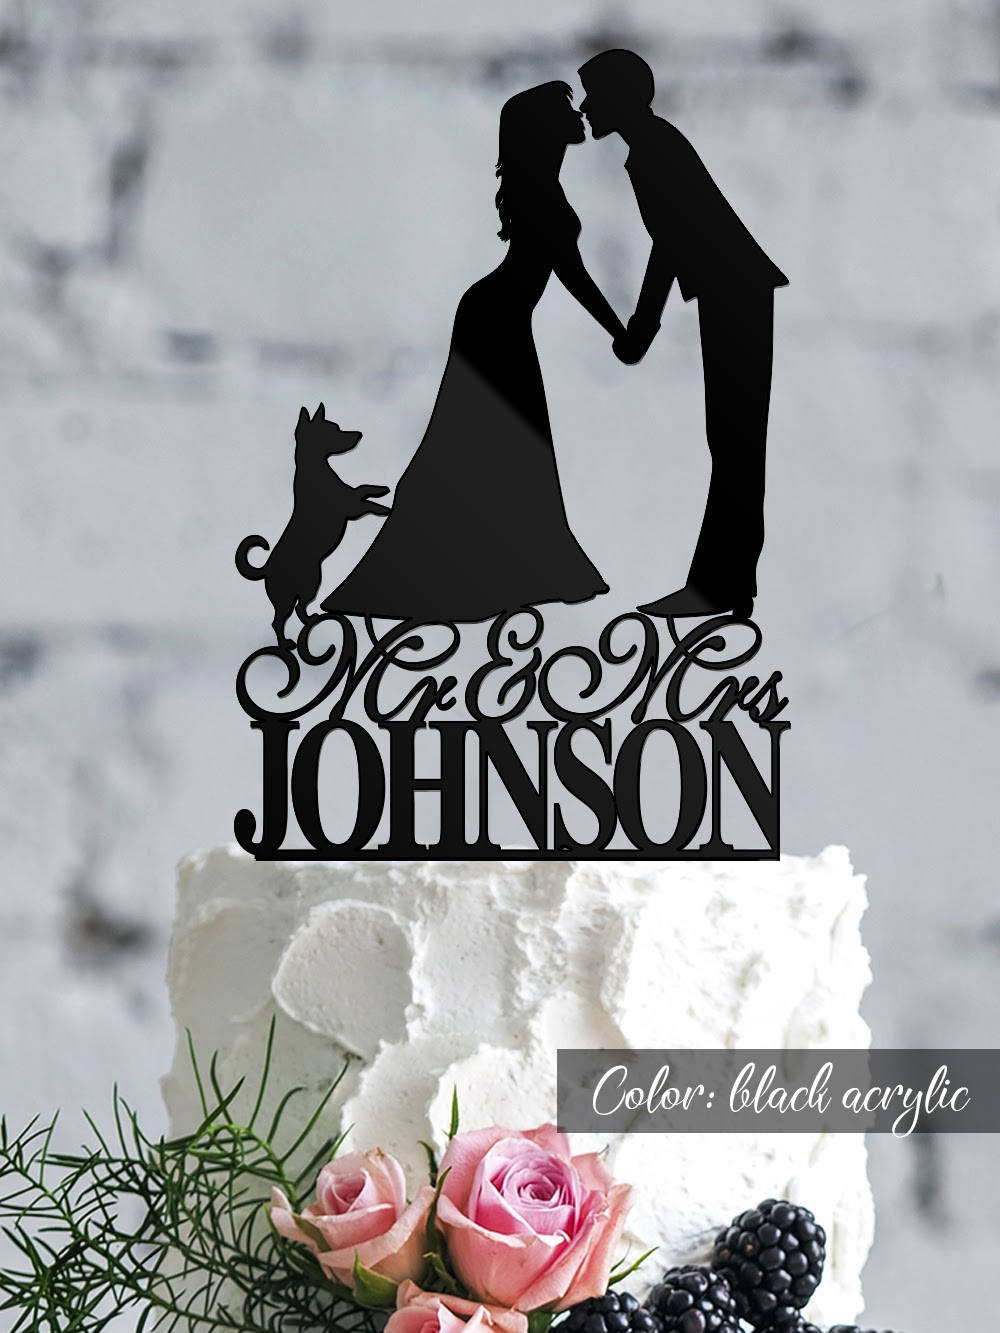 Wedding Cake Topper. Couple Silhouette Cake Topper With Dog. Custom Silhouette Personalized Bride & Groom